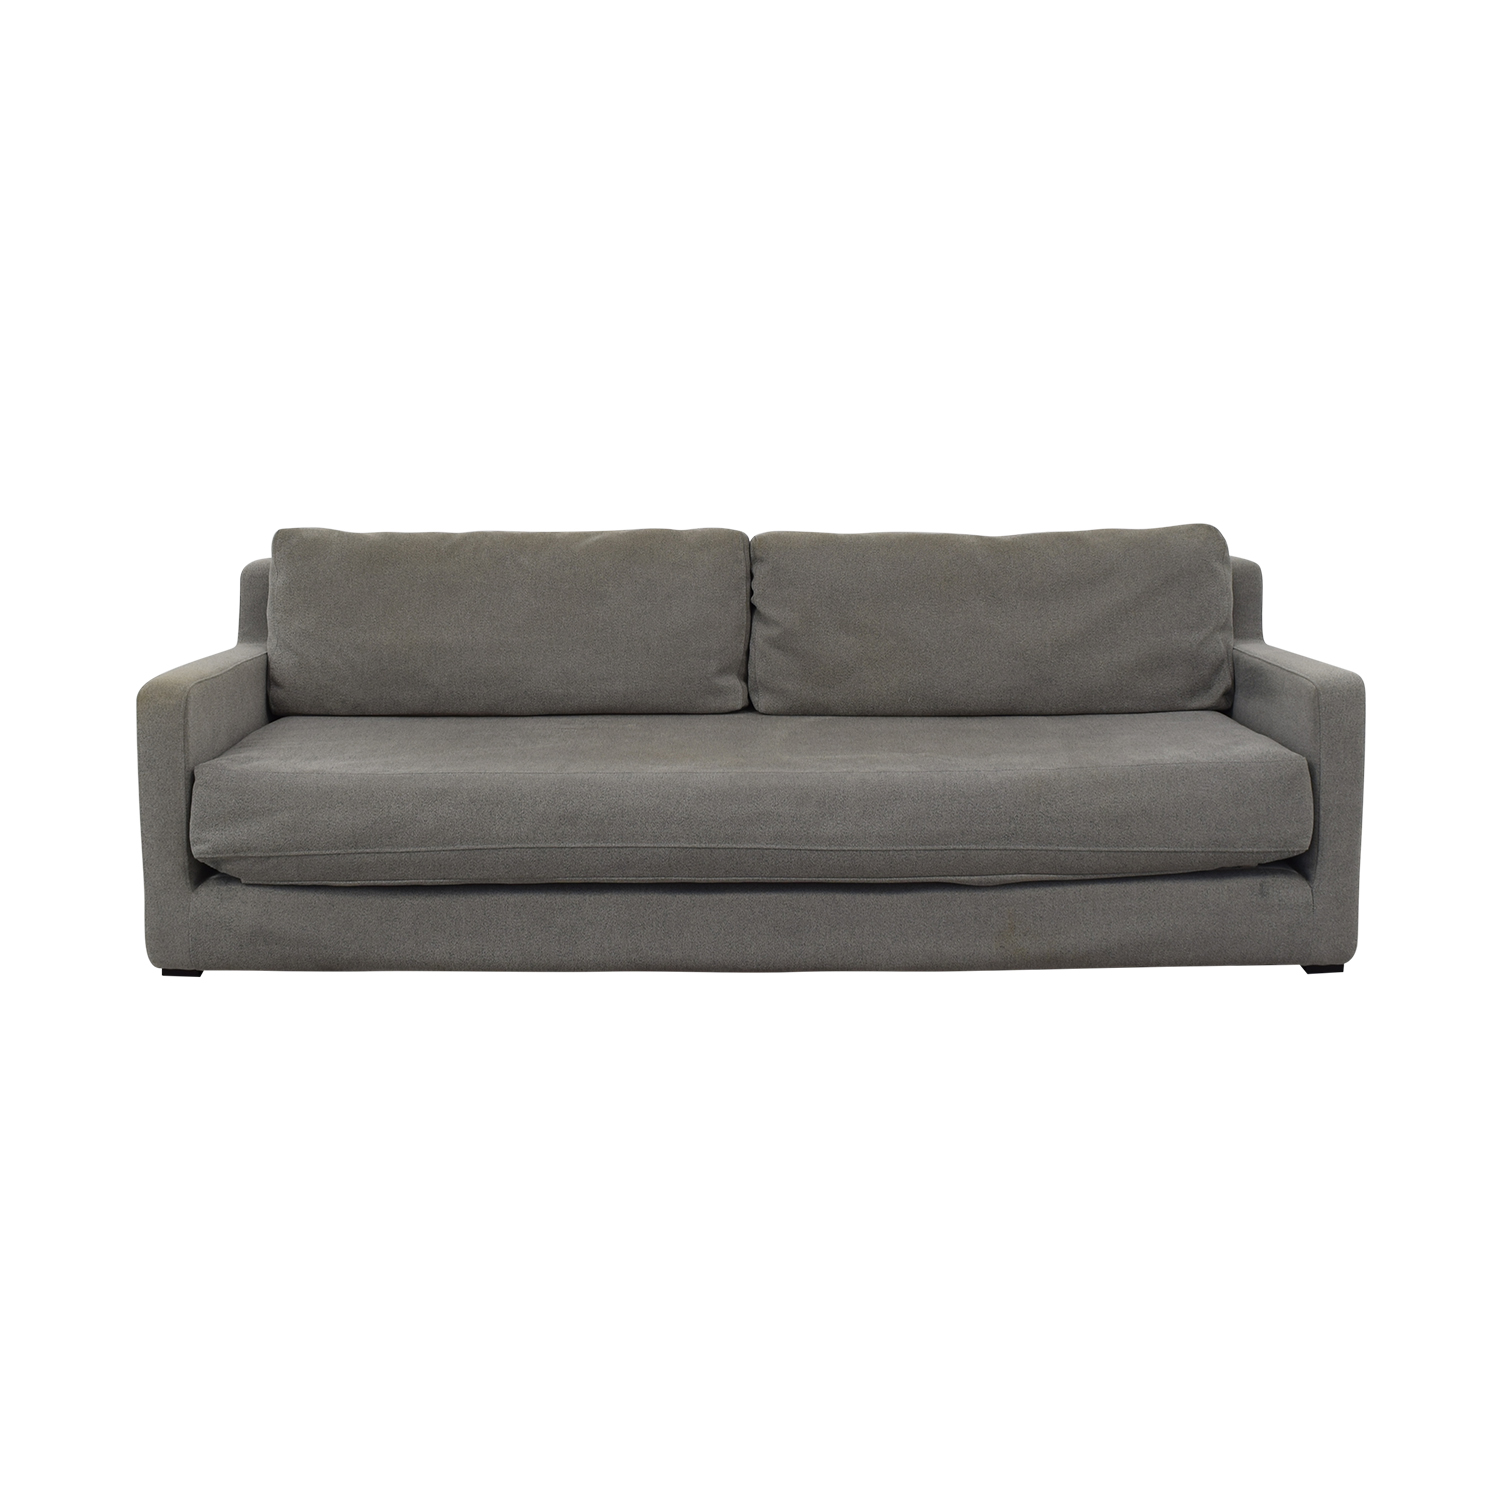 Gus Modern Gus Modern Fabric Sleeper Sofa nj